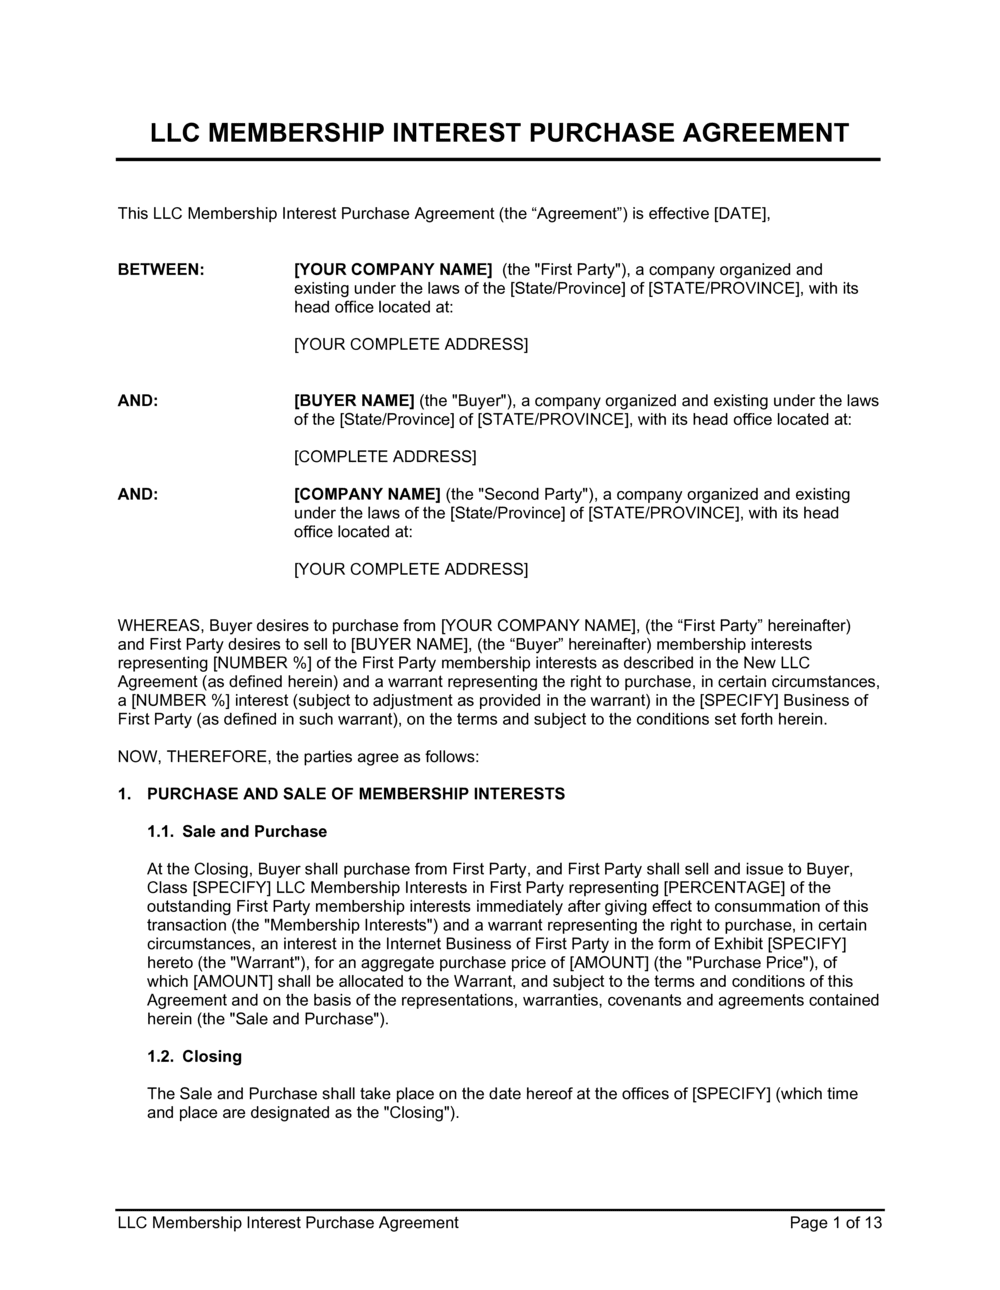 Business-in-a-Box's LLC Membership Interest Purchase Agreement Template